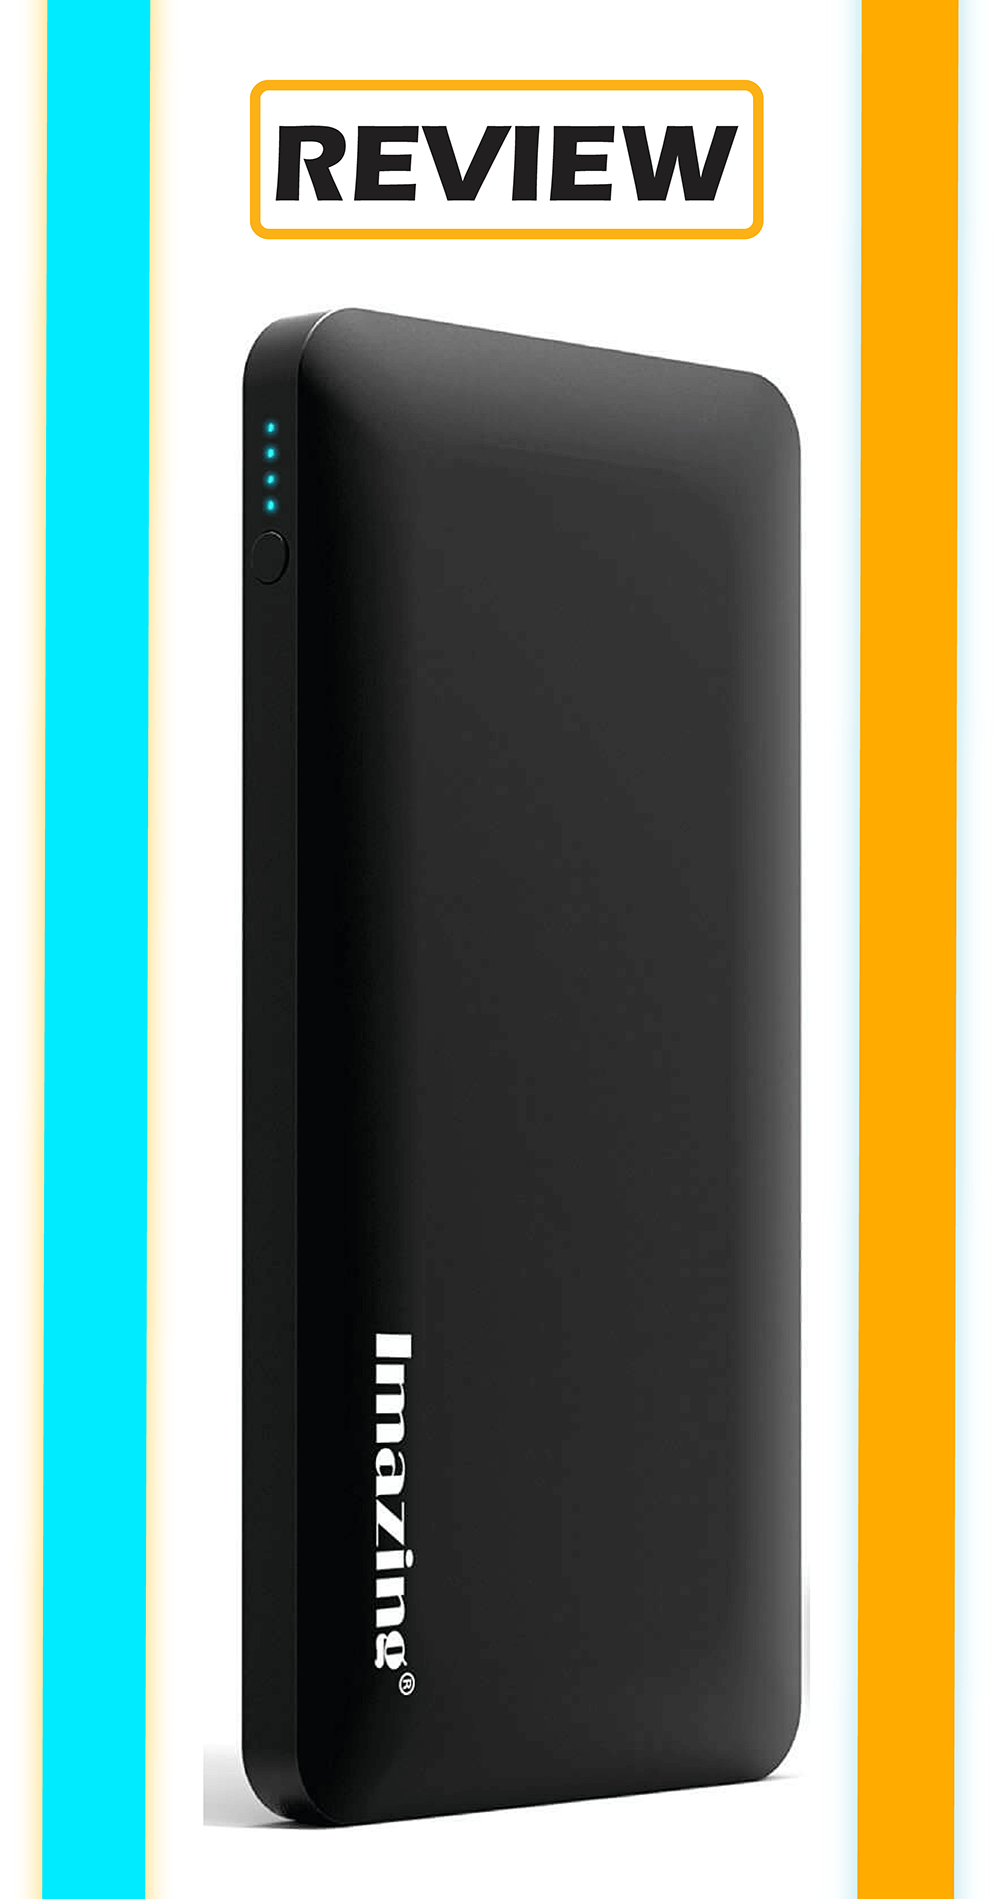 Imazing Power Bank Review